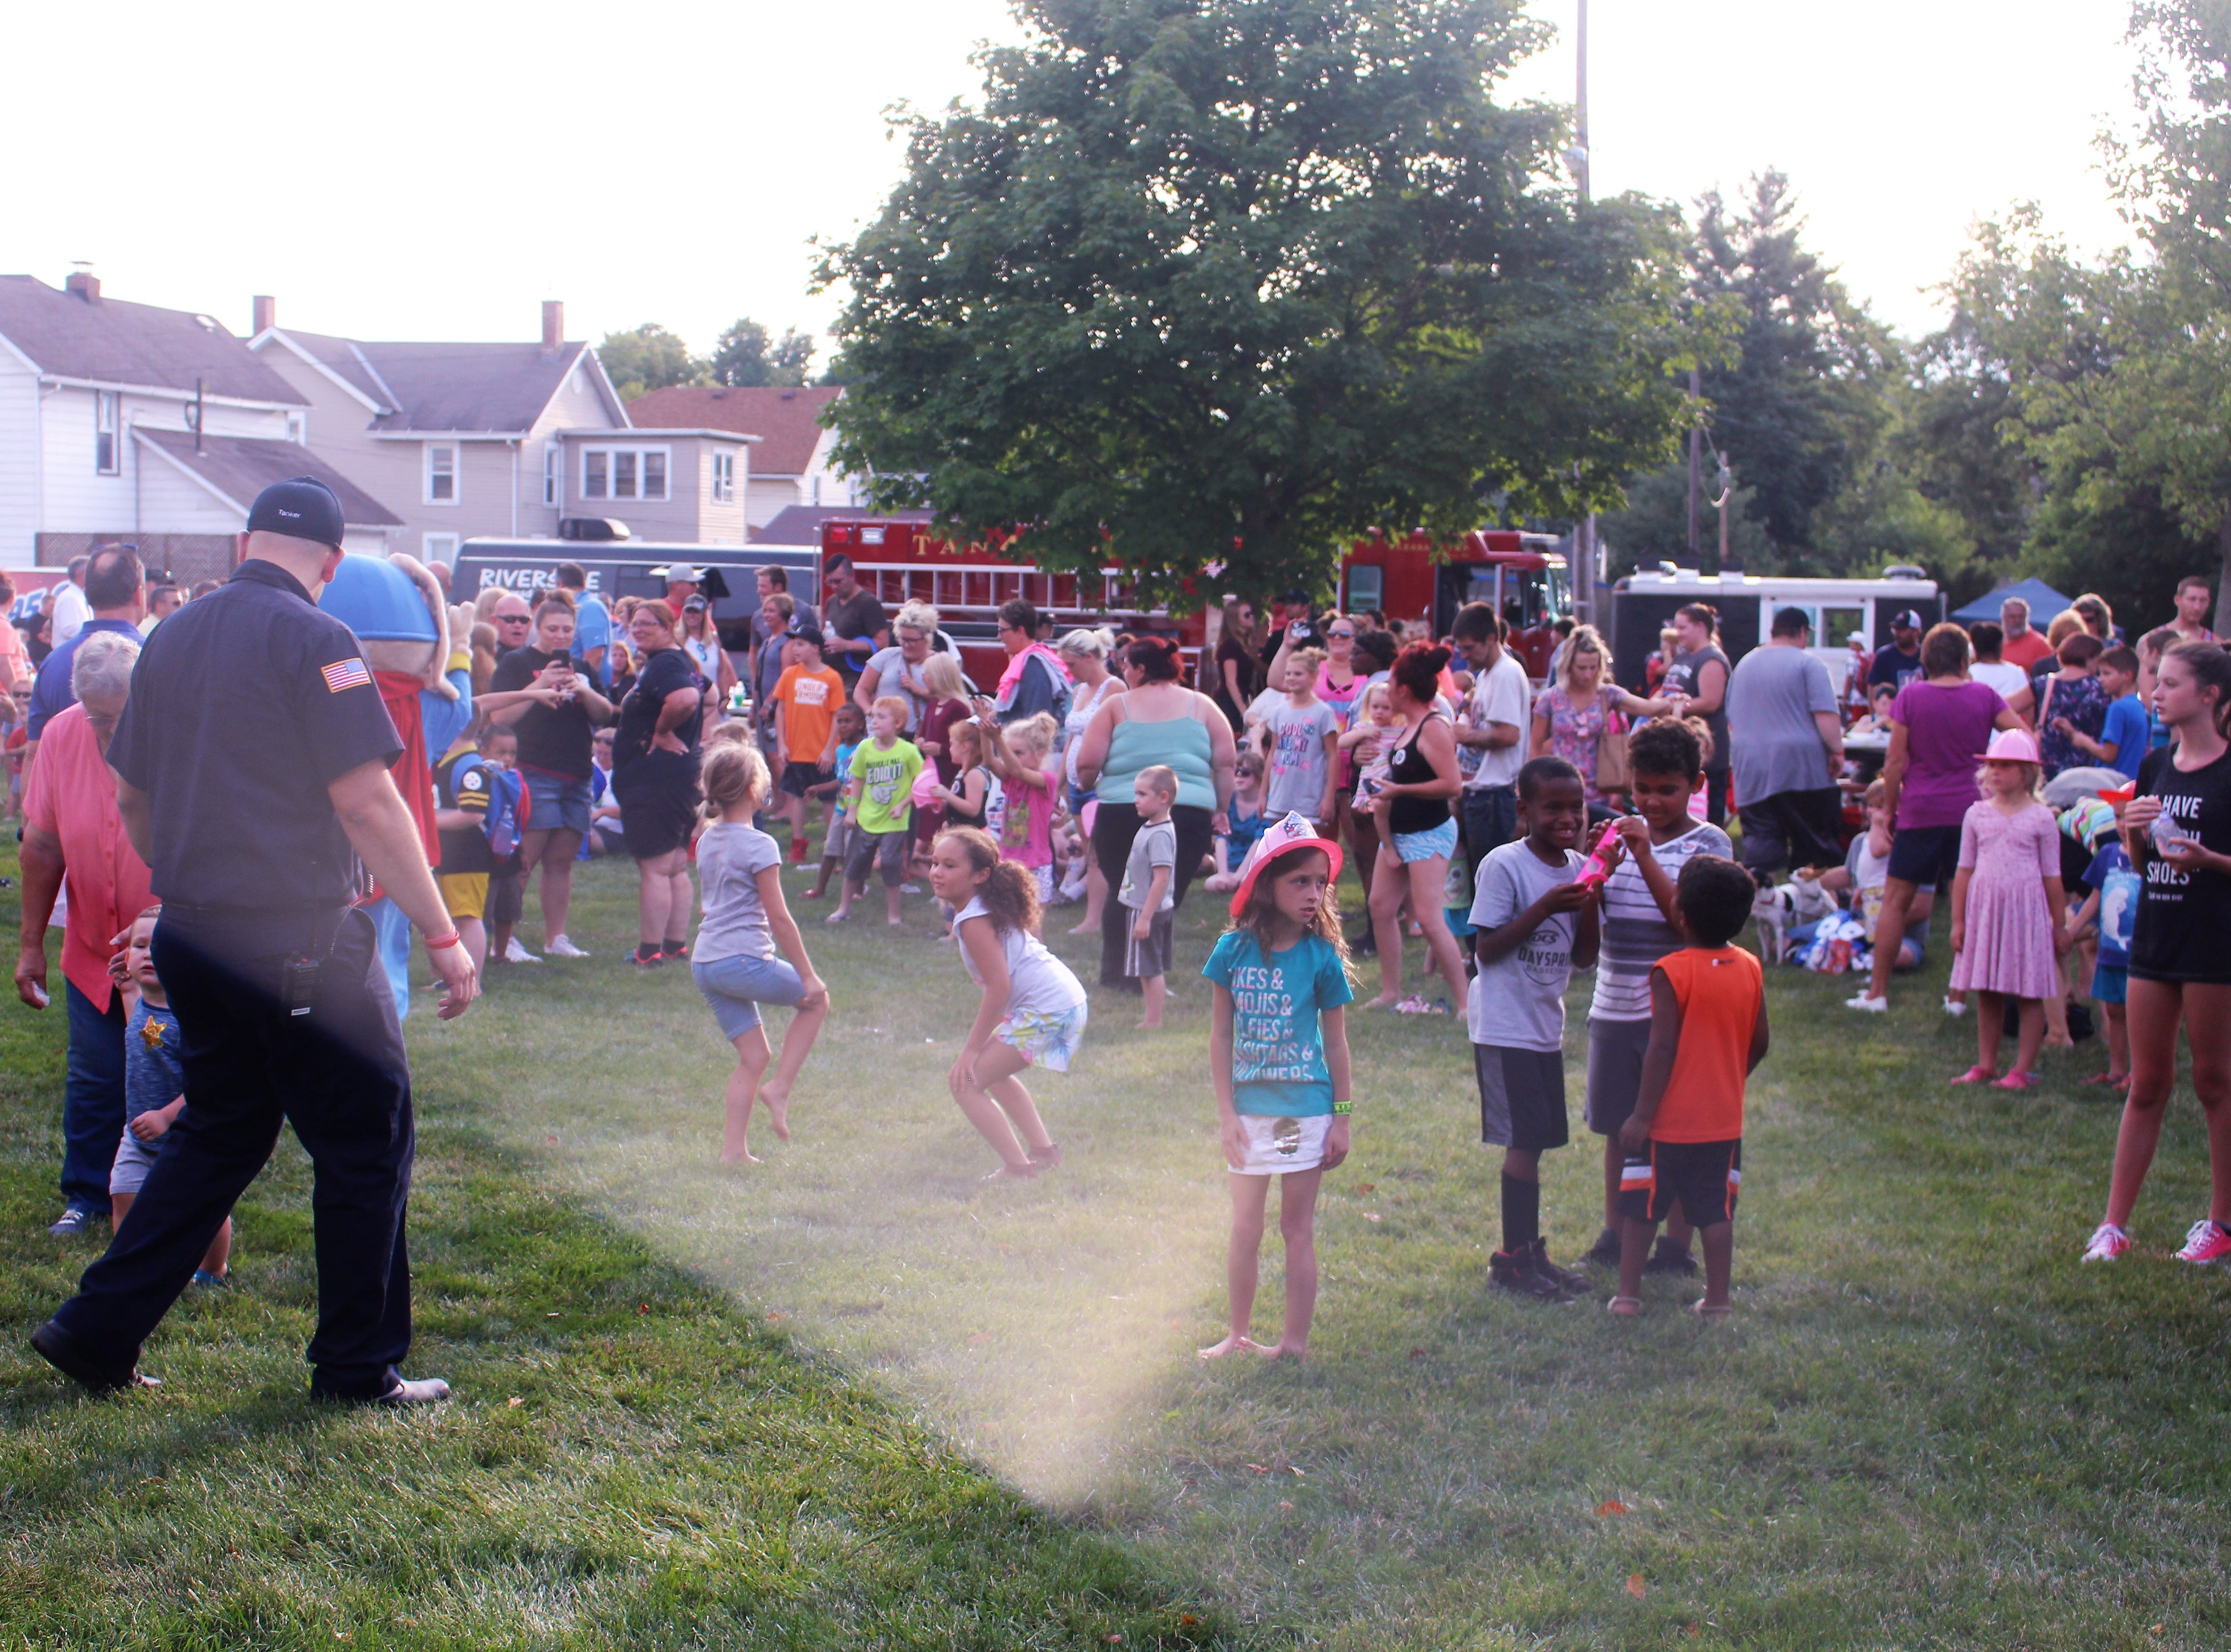 Children dance under the watchful eye of their parents during the National Night Out event outside Grant Middle School on Tuesday.